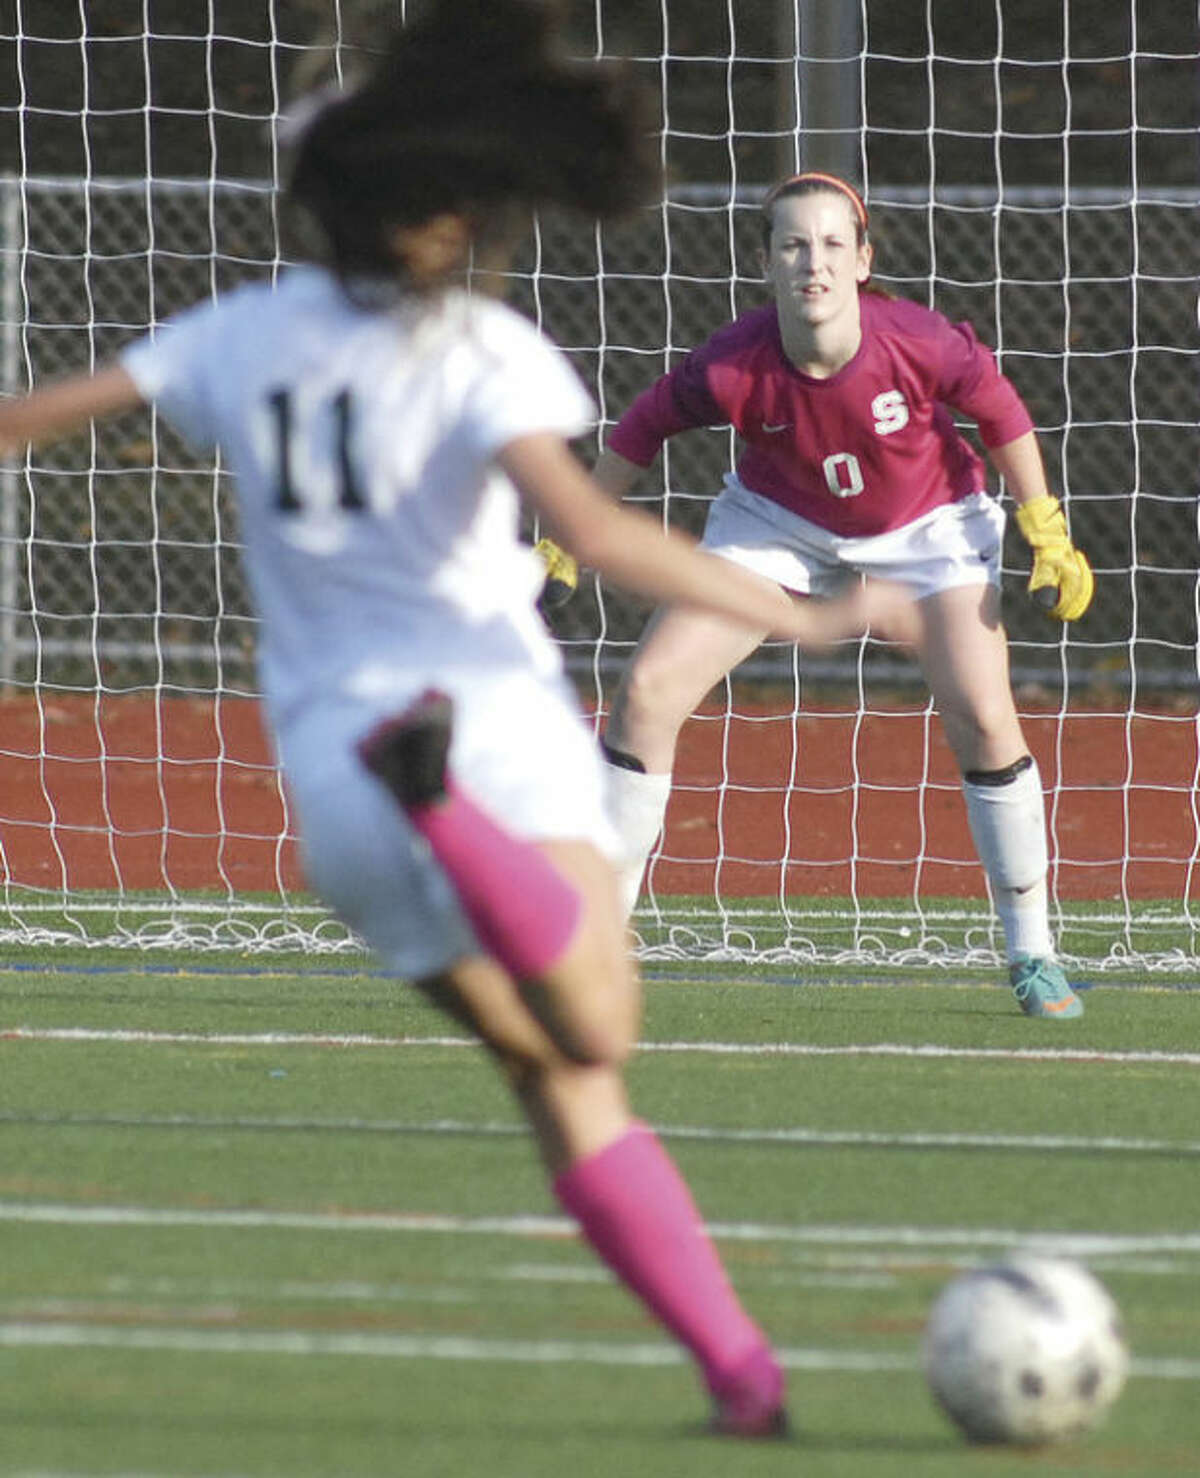 Hour photo/John Nash - Mary Bennwitz, right, the goalkeeper at Staples High School, keeps her eye on a shot take by a Norwalk player last week.